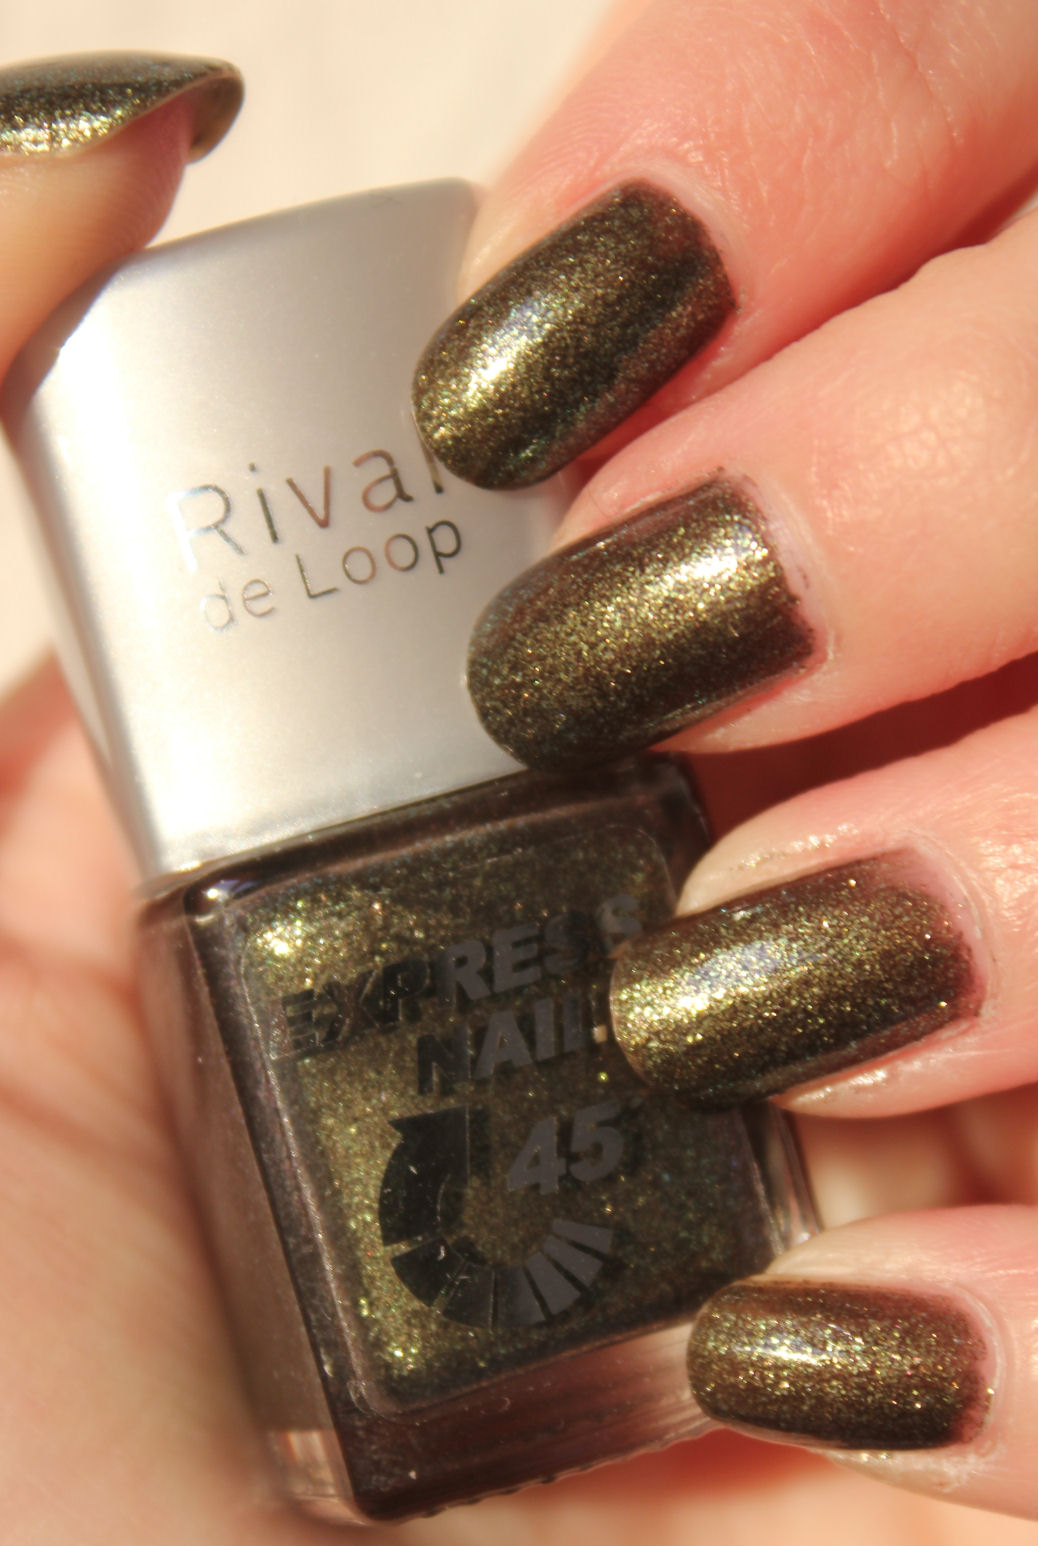 http://lacquediction.blogspot.de/2014/01/rival-de-loop-express-nails-229.html